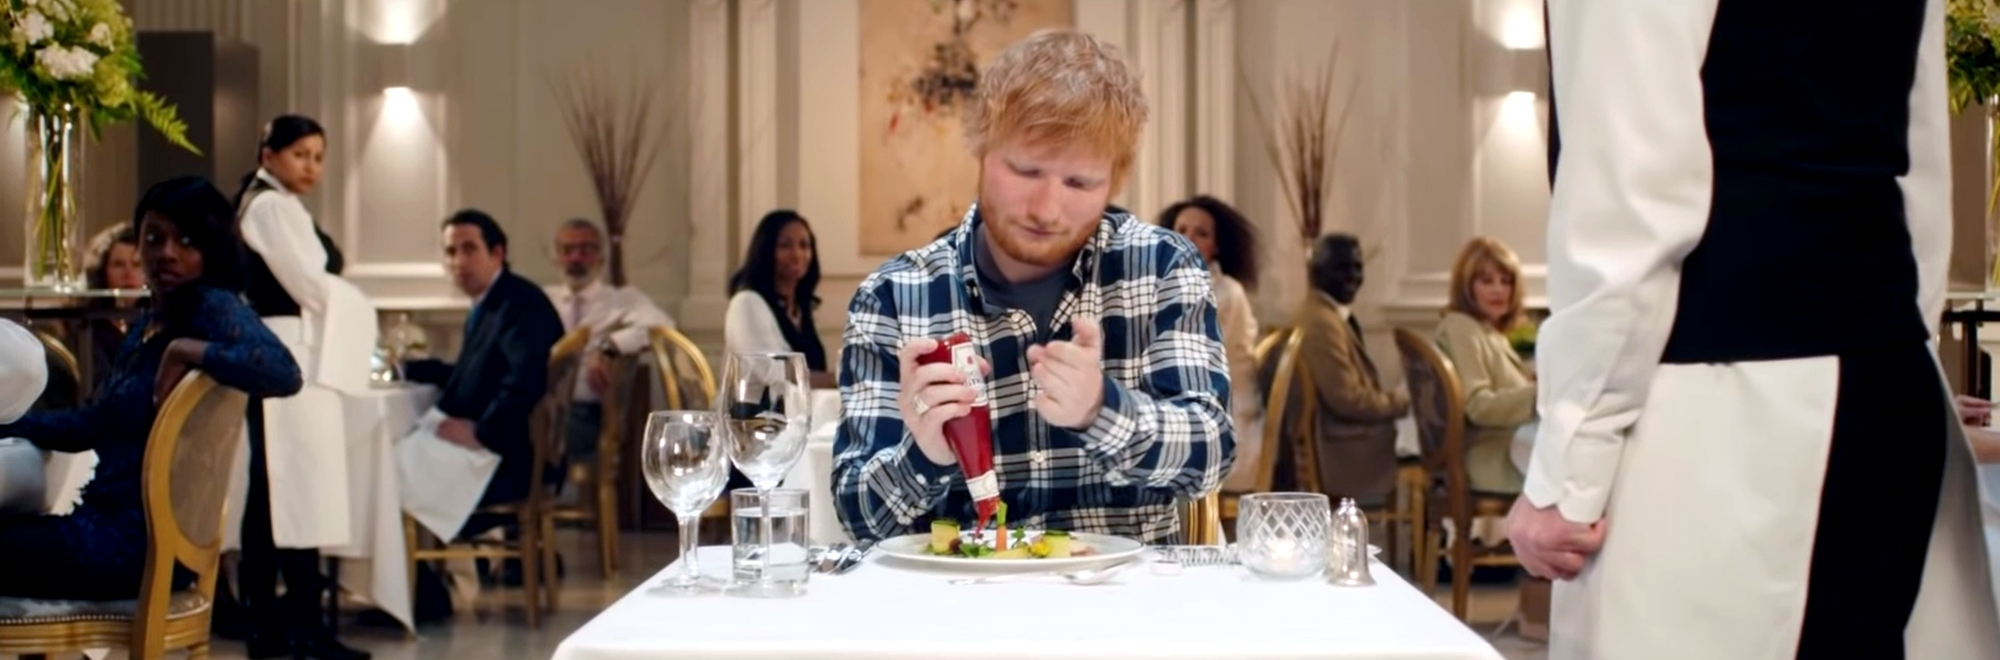 Ed Sheeran loves Heinz Ketchup, but why should we care?